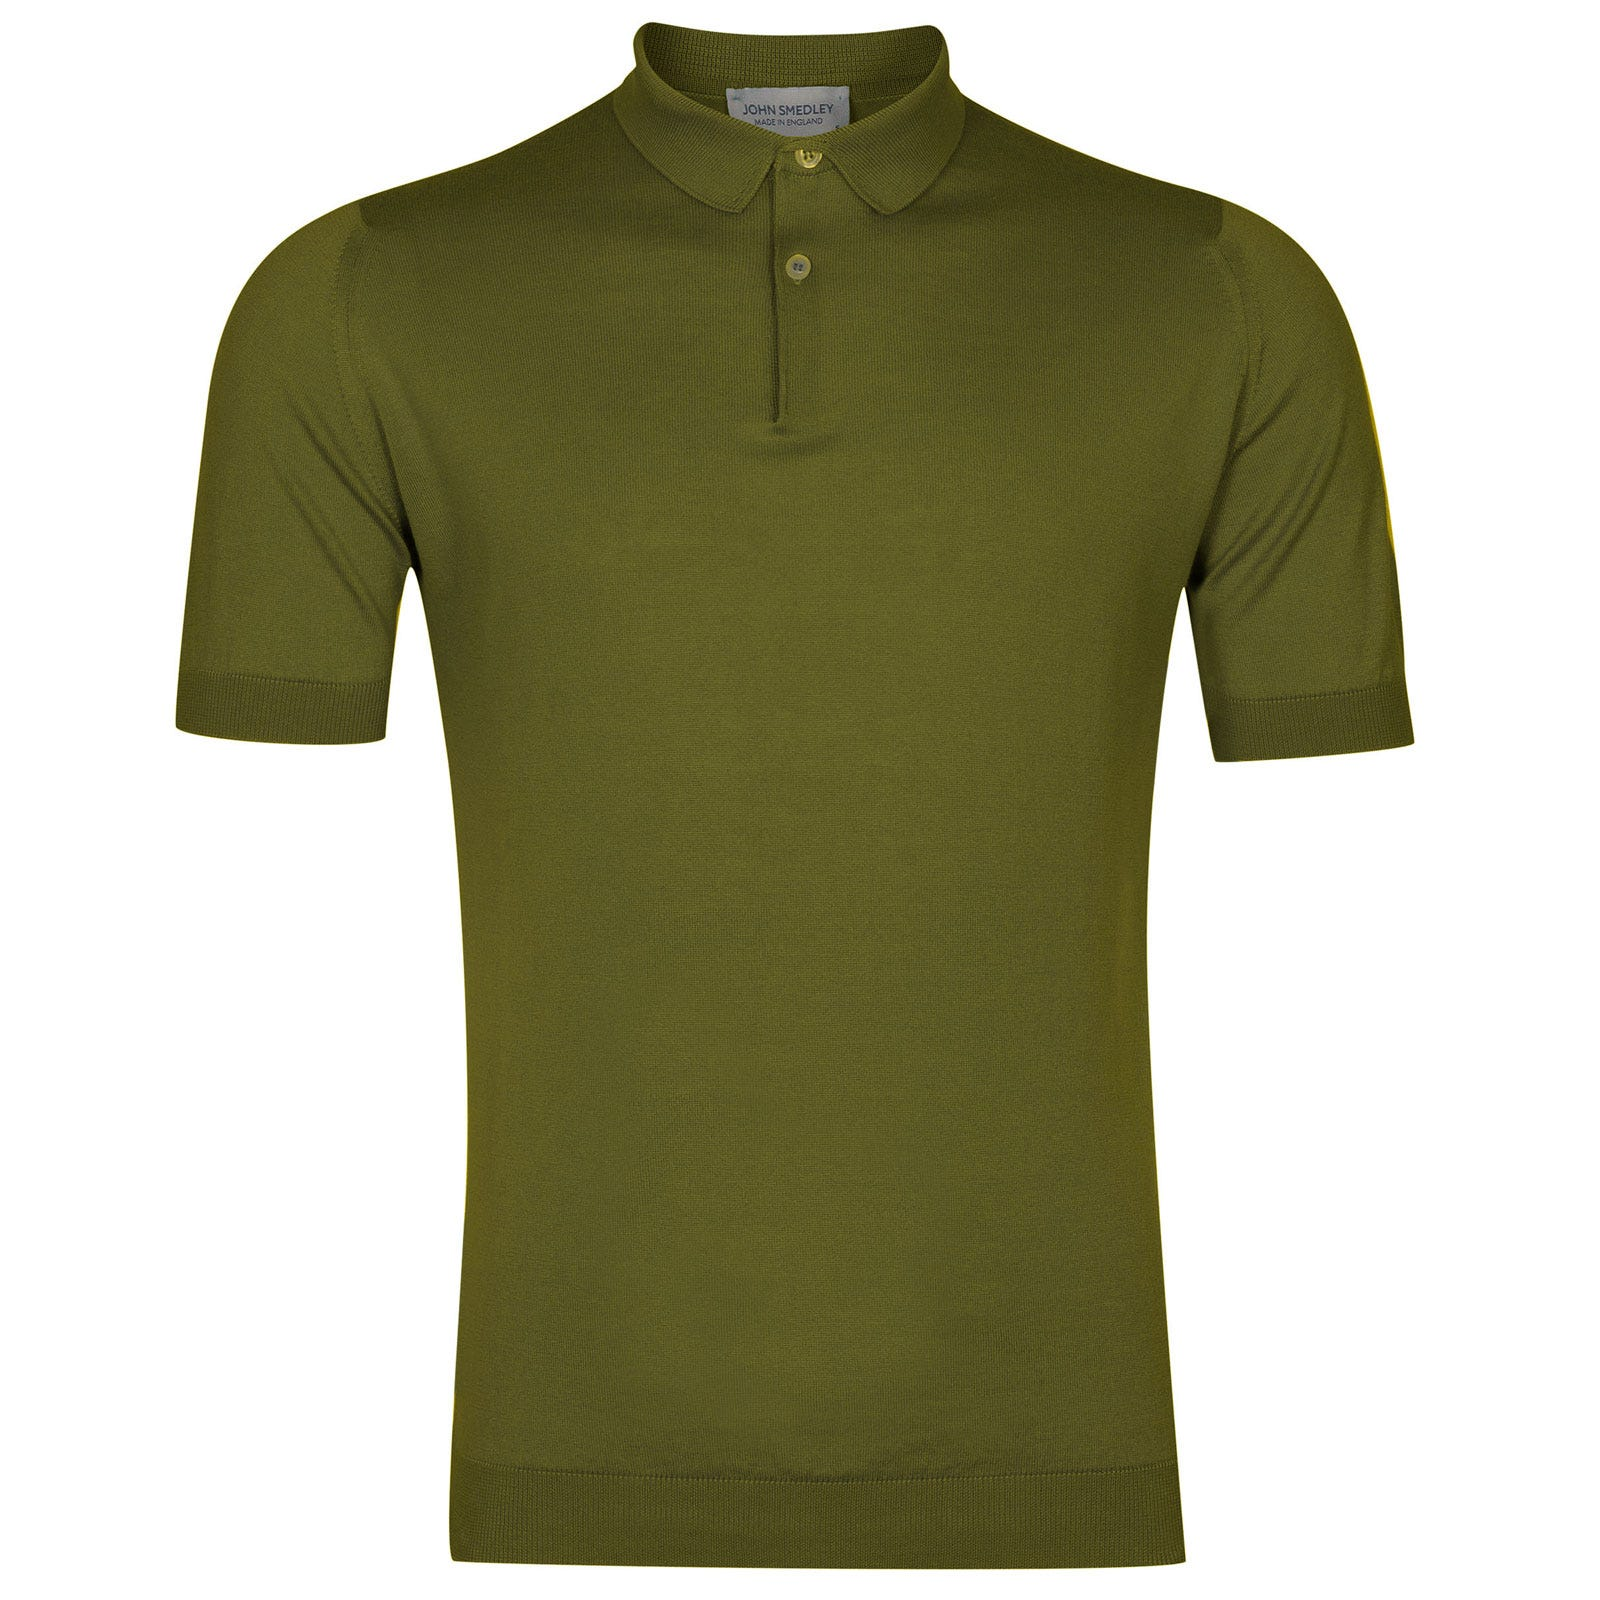 John Smedley rhodes Sea Island Cotton Shirt in Lumsdale Green-XL